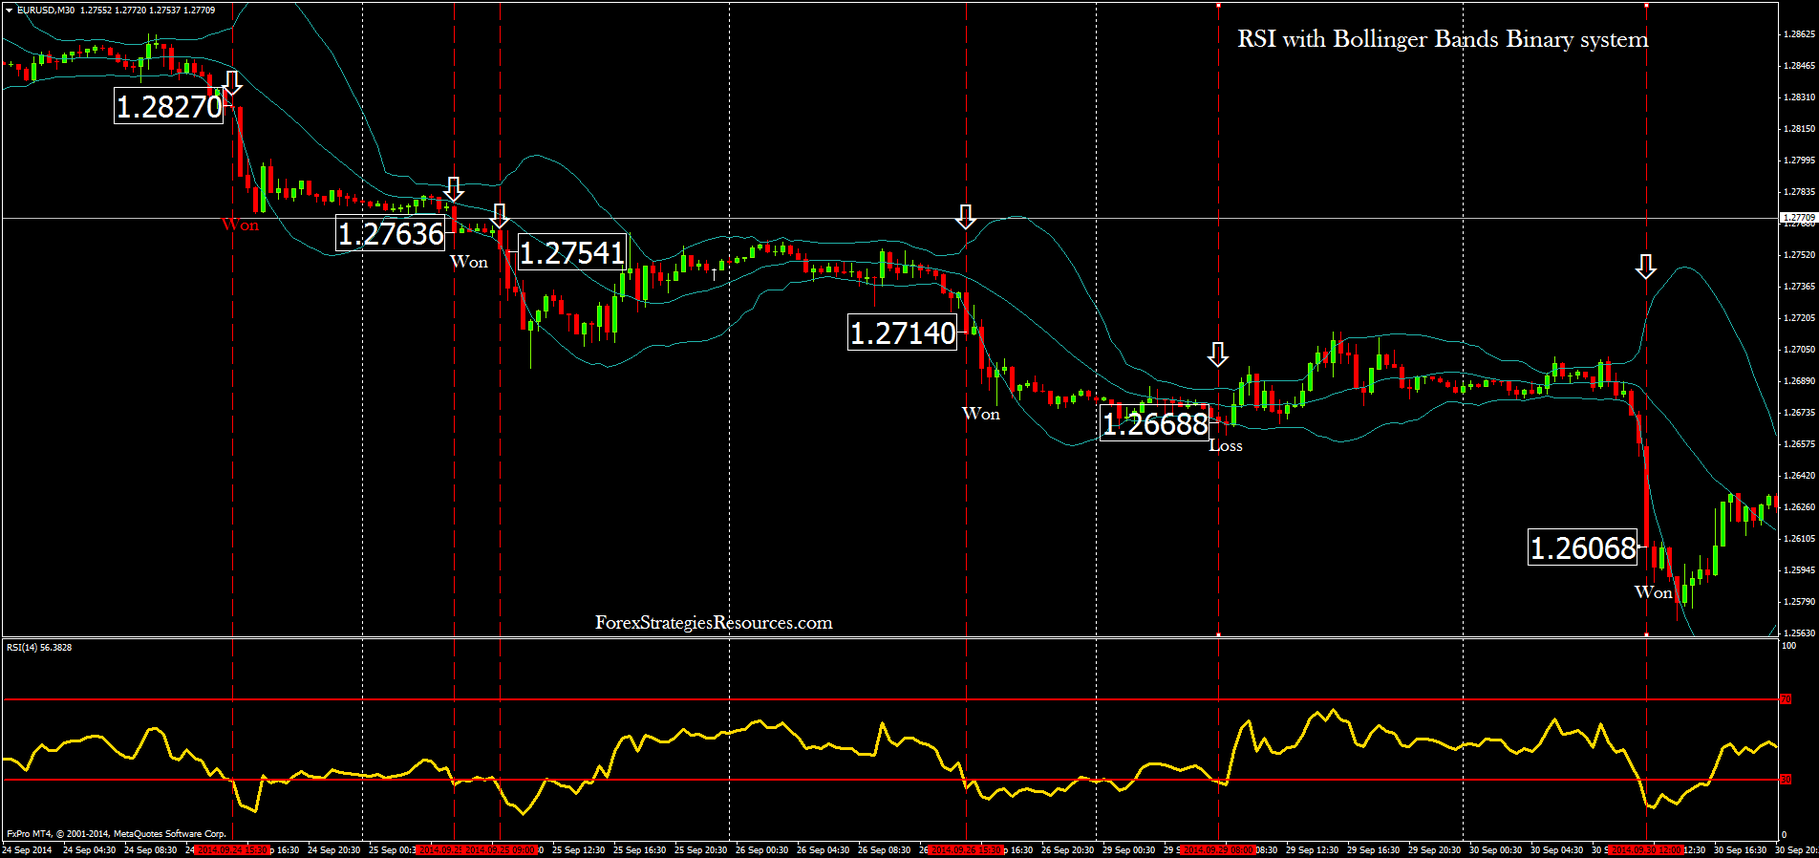 Bollinger bands binary strategy